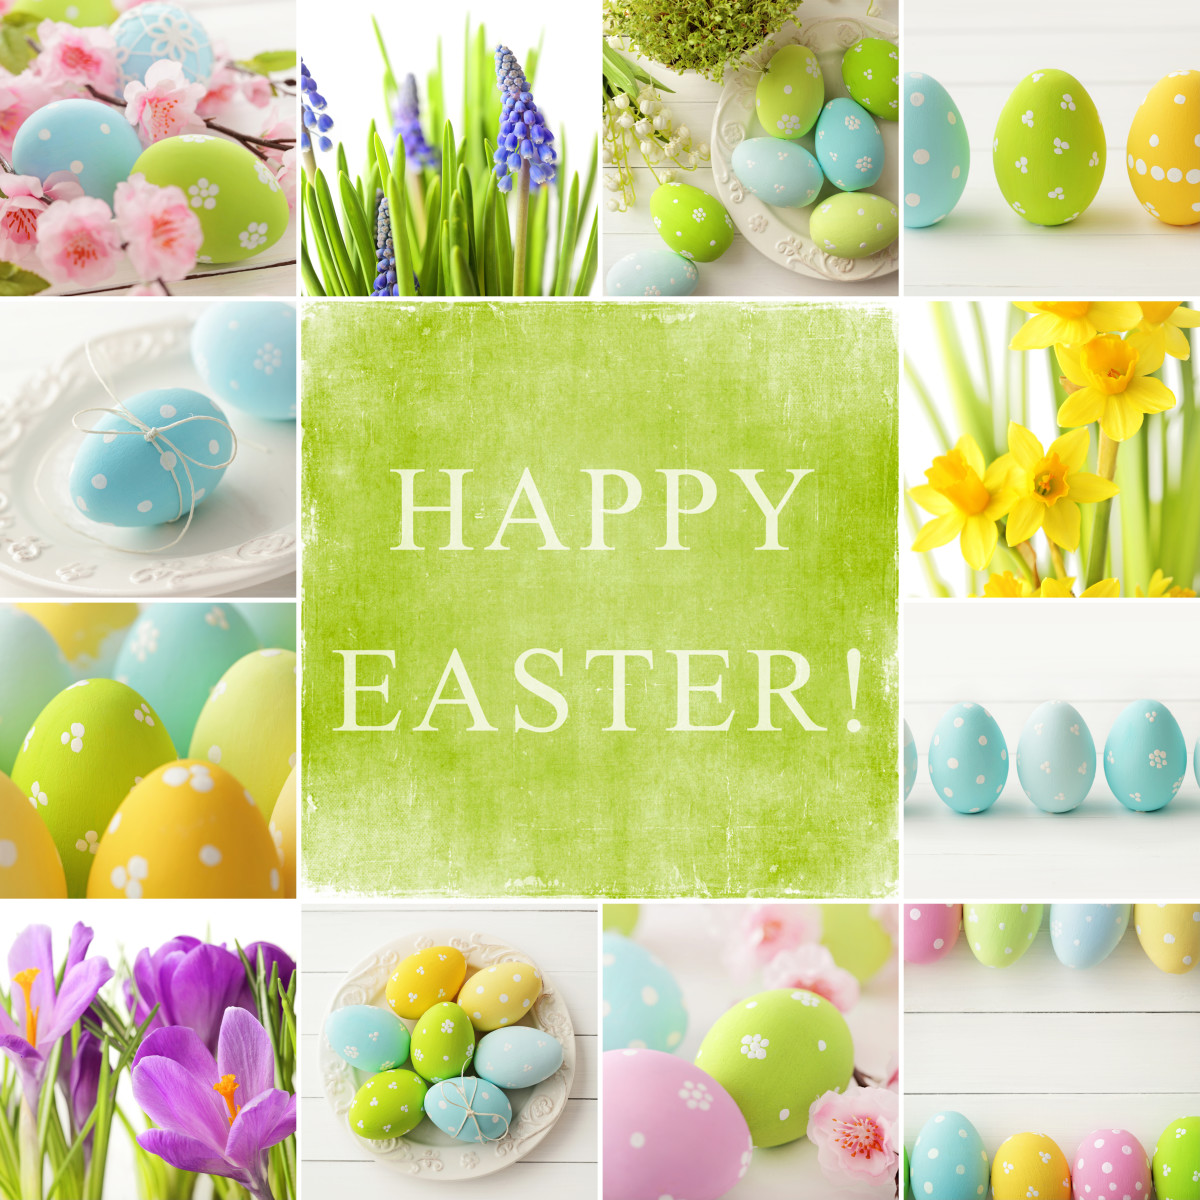 20 Happy Easter Messages & Wishes